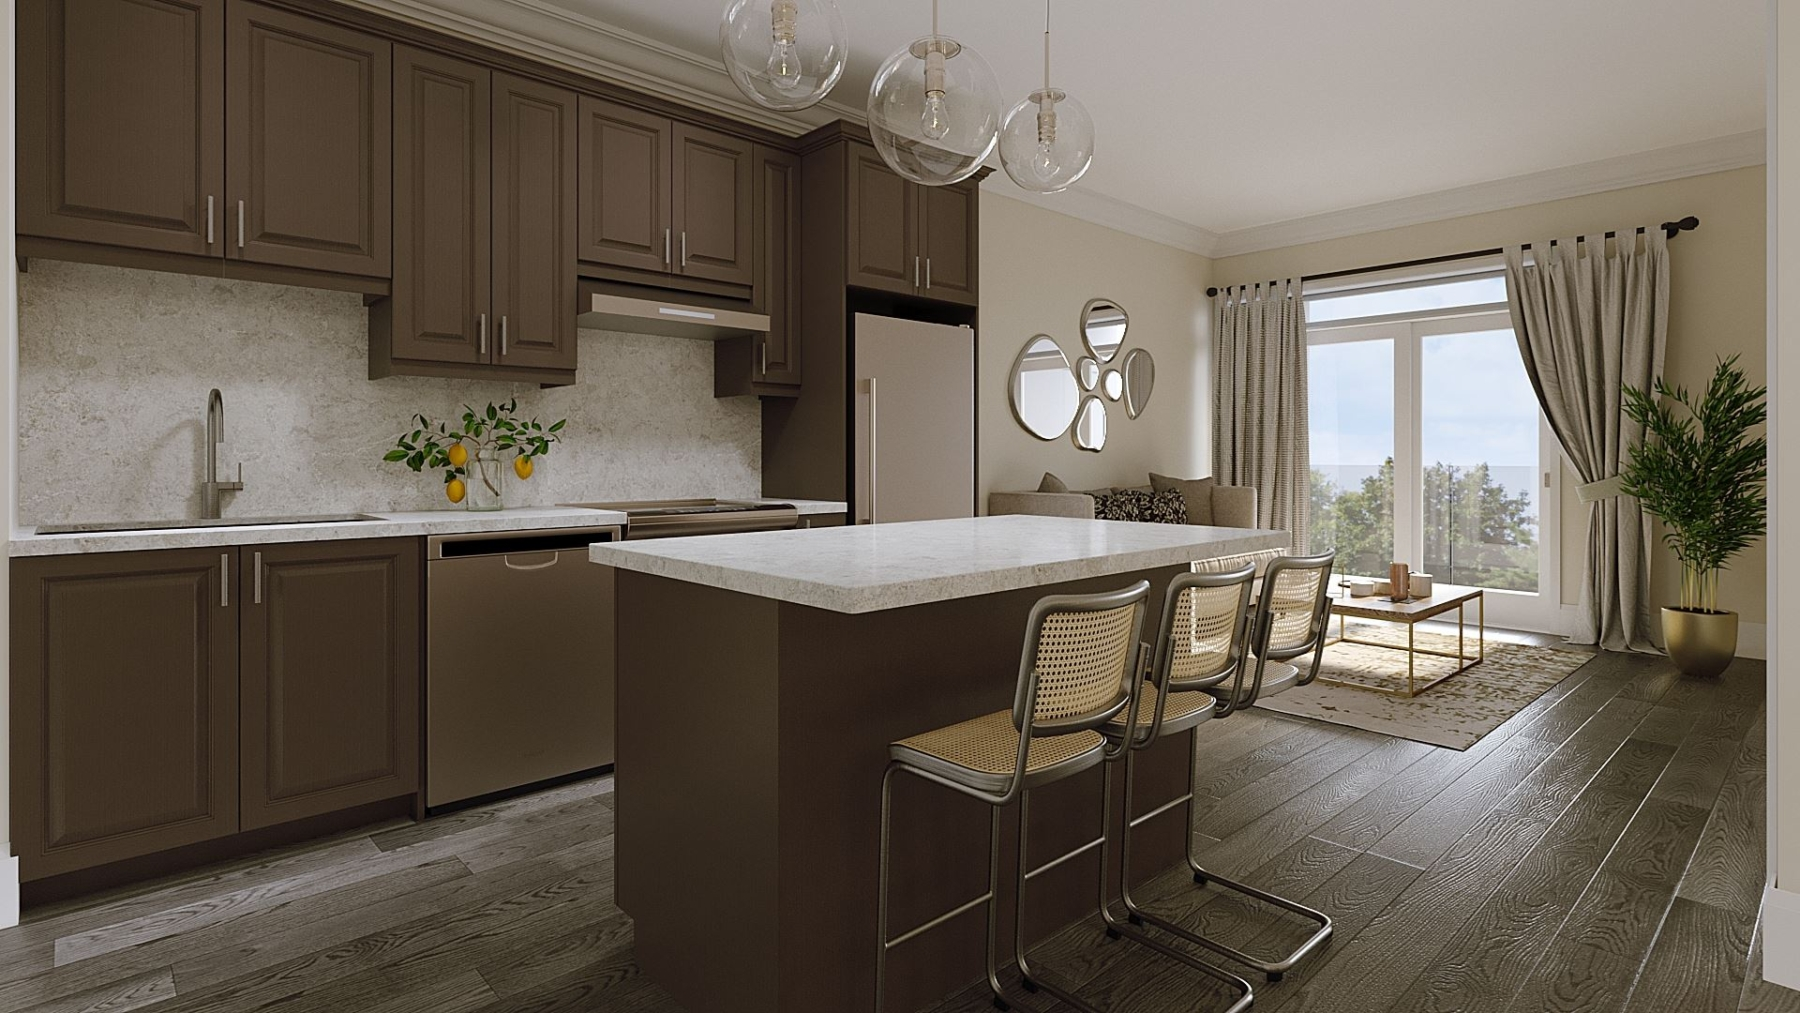 Rendering of Montebello Condos interior kitchen style dark